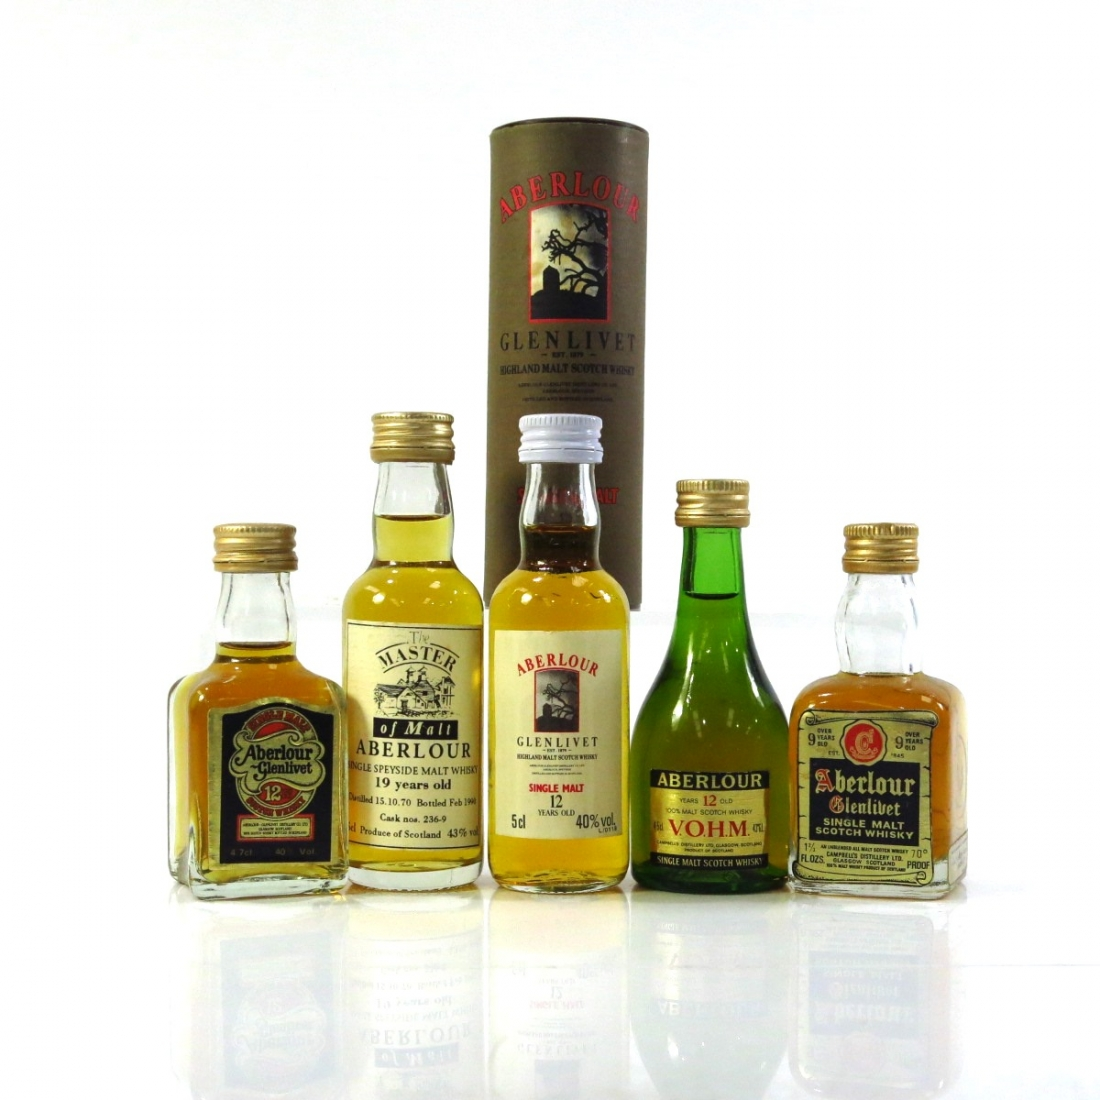 Aberlour Miniature Selection x 5 / includes 9 Year Old 1970s